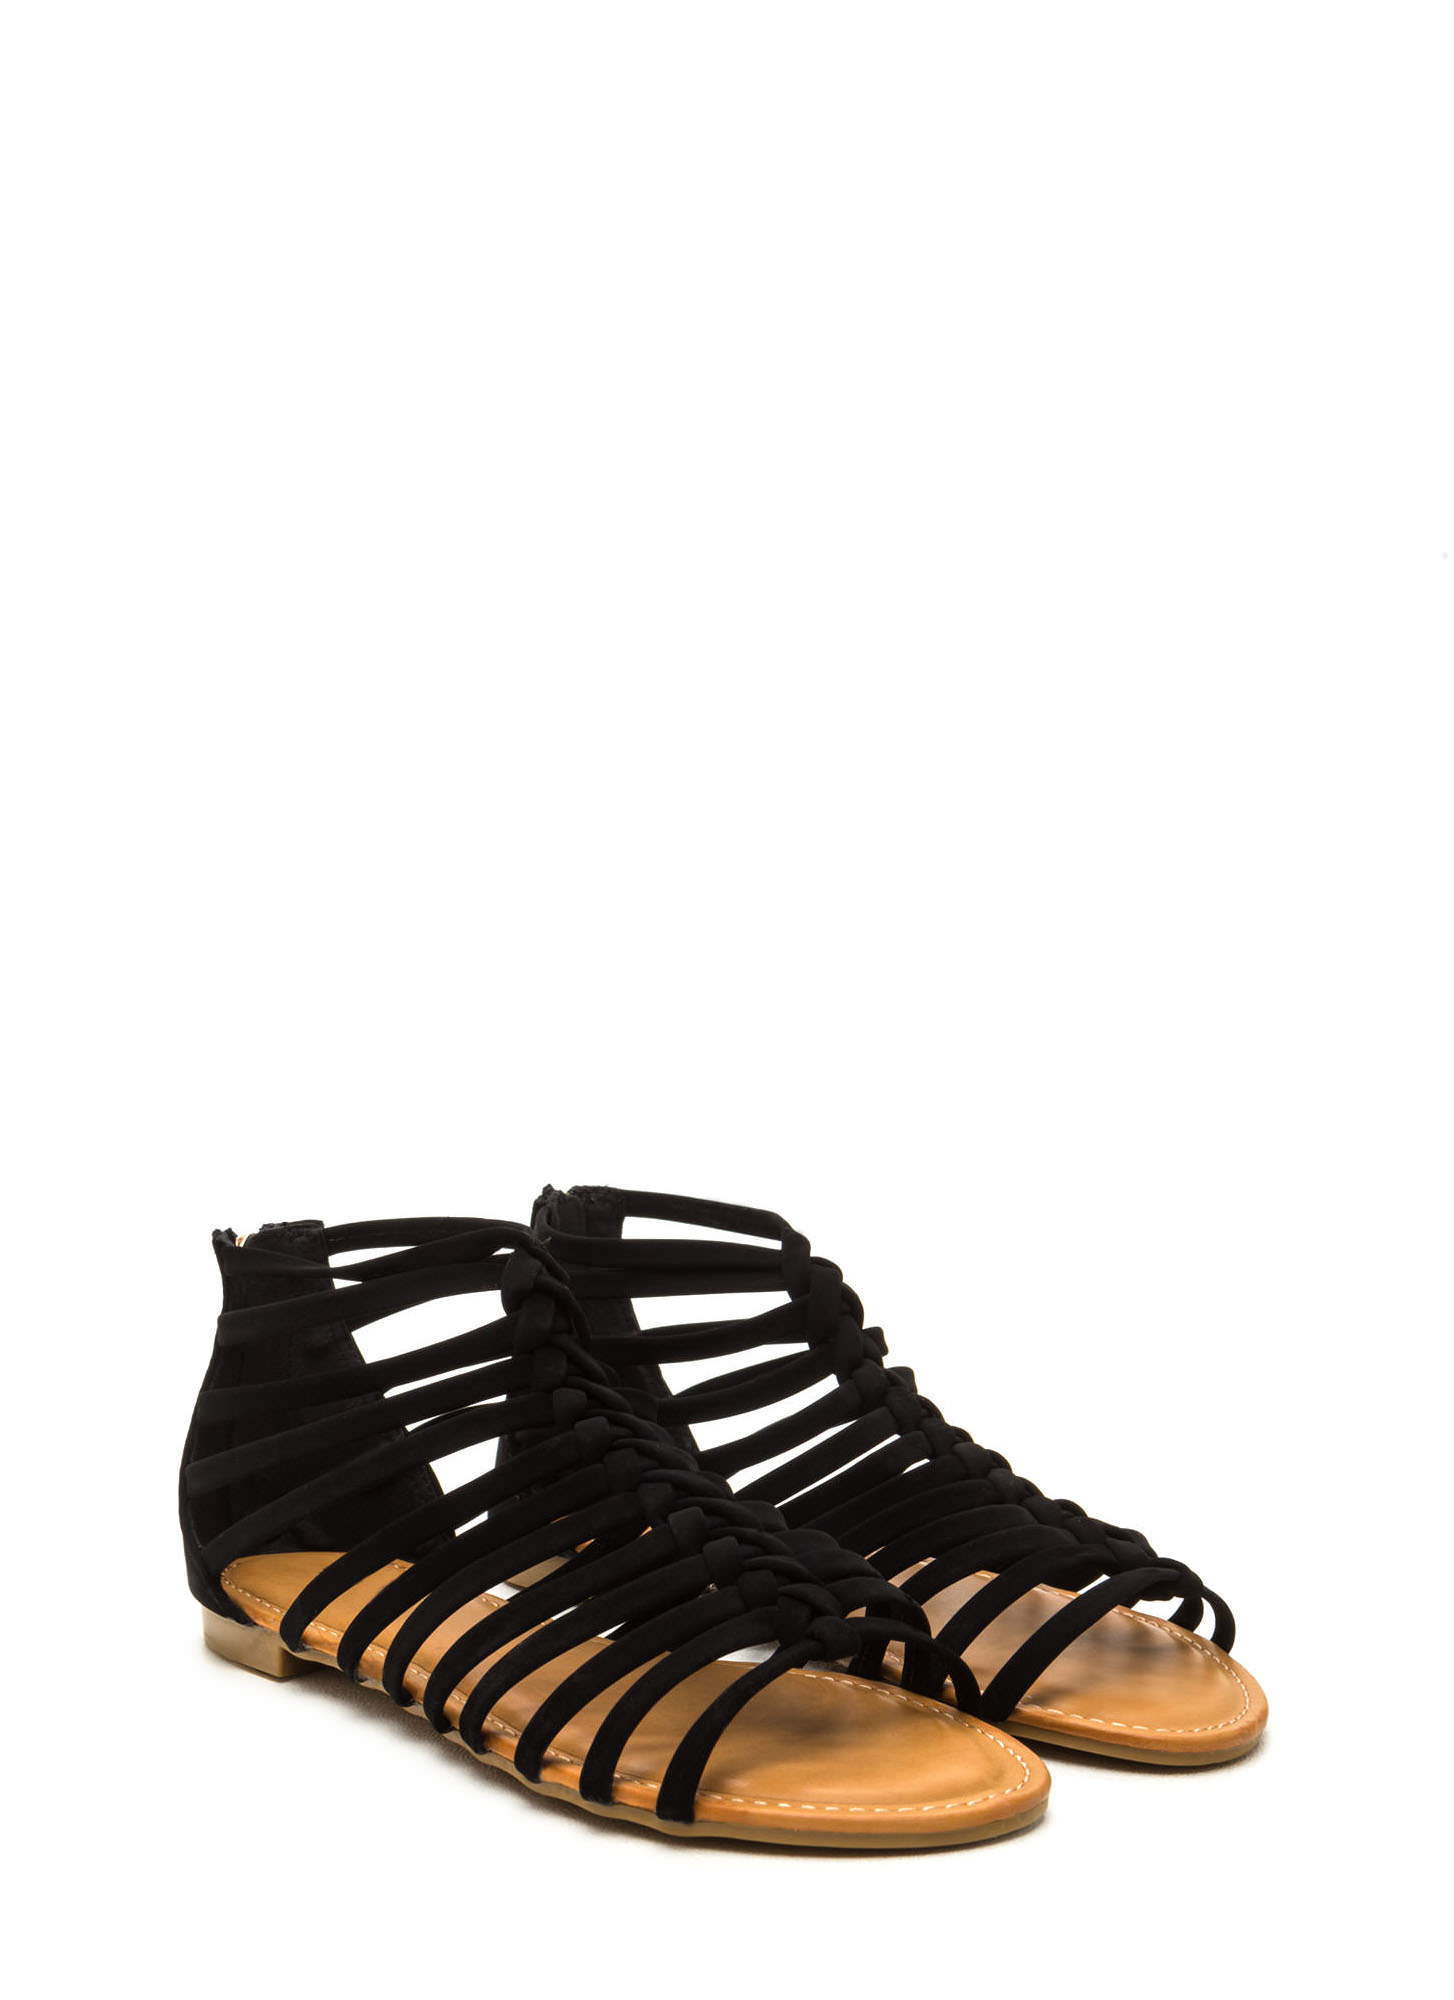 Keep In Line Caged Faux Nubuck Sandals BLACK